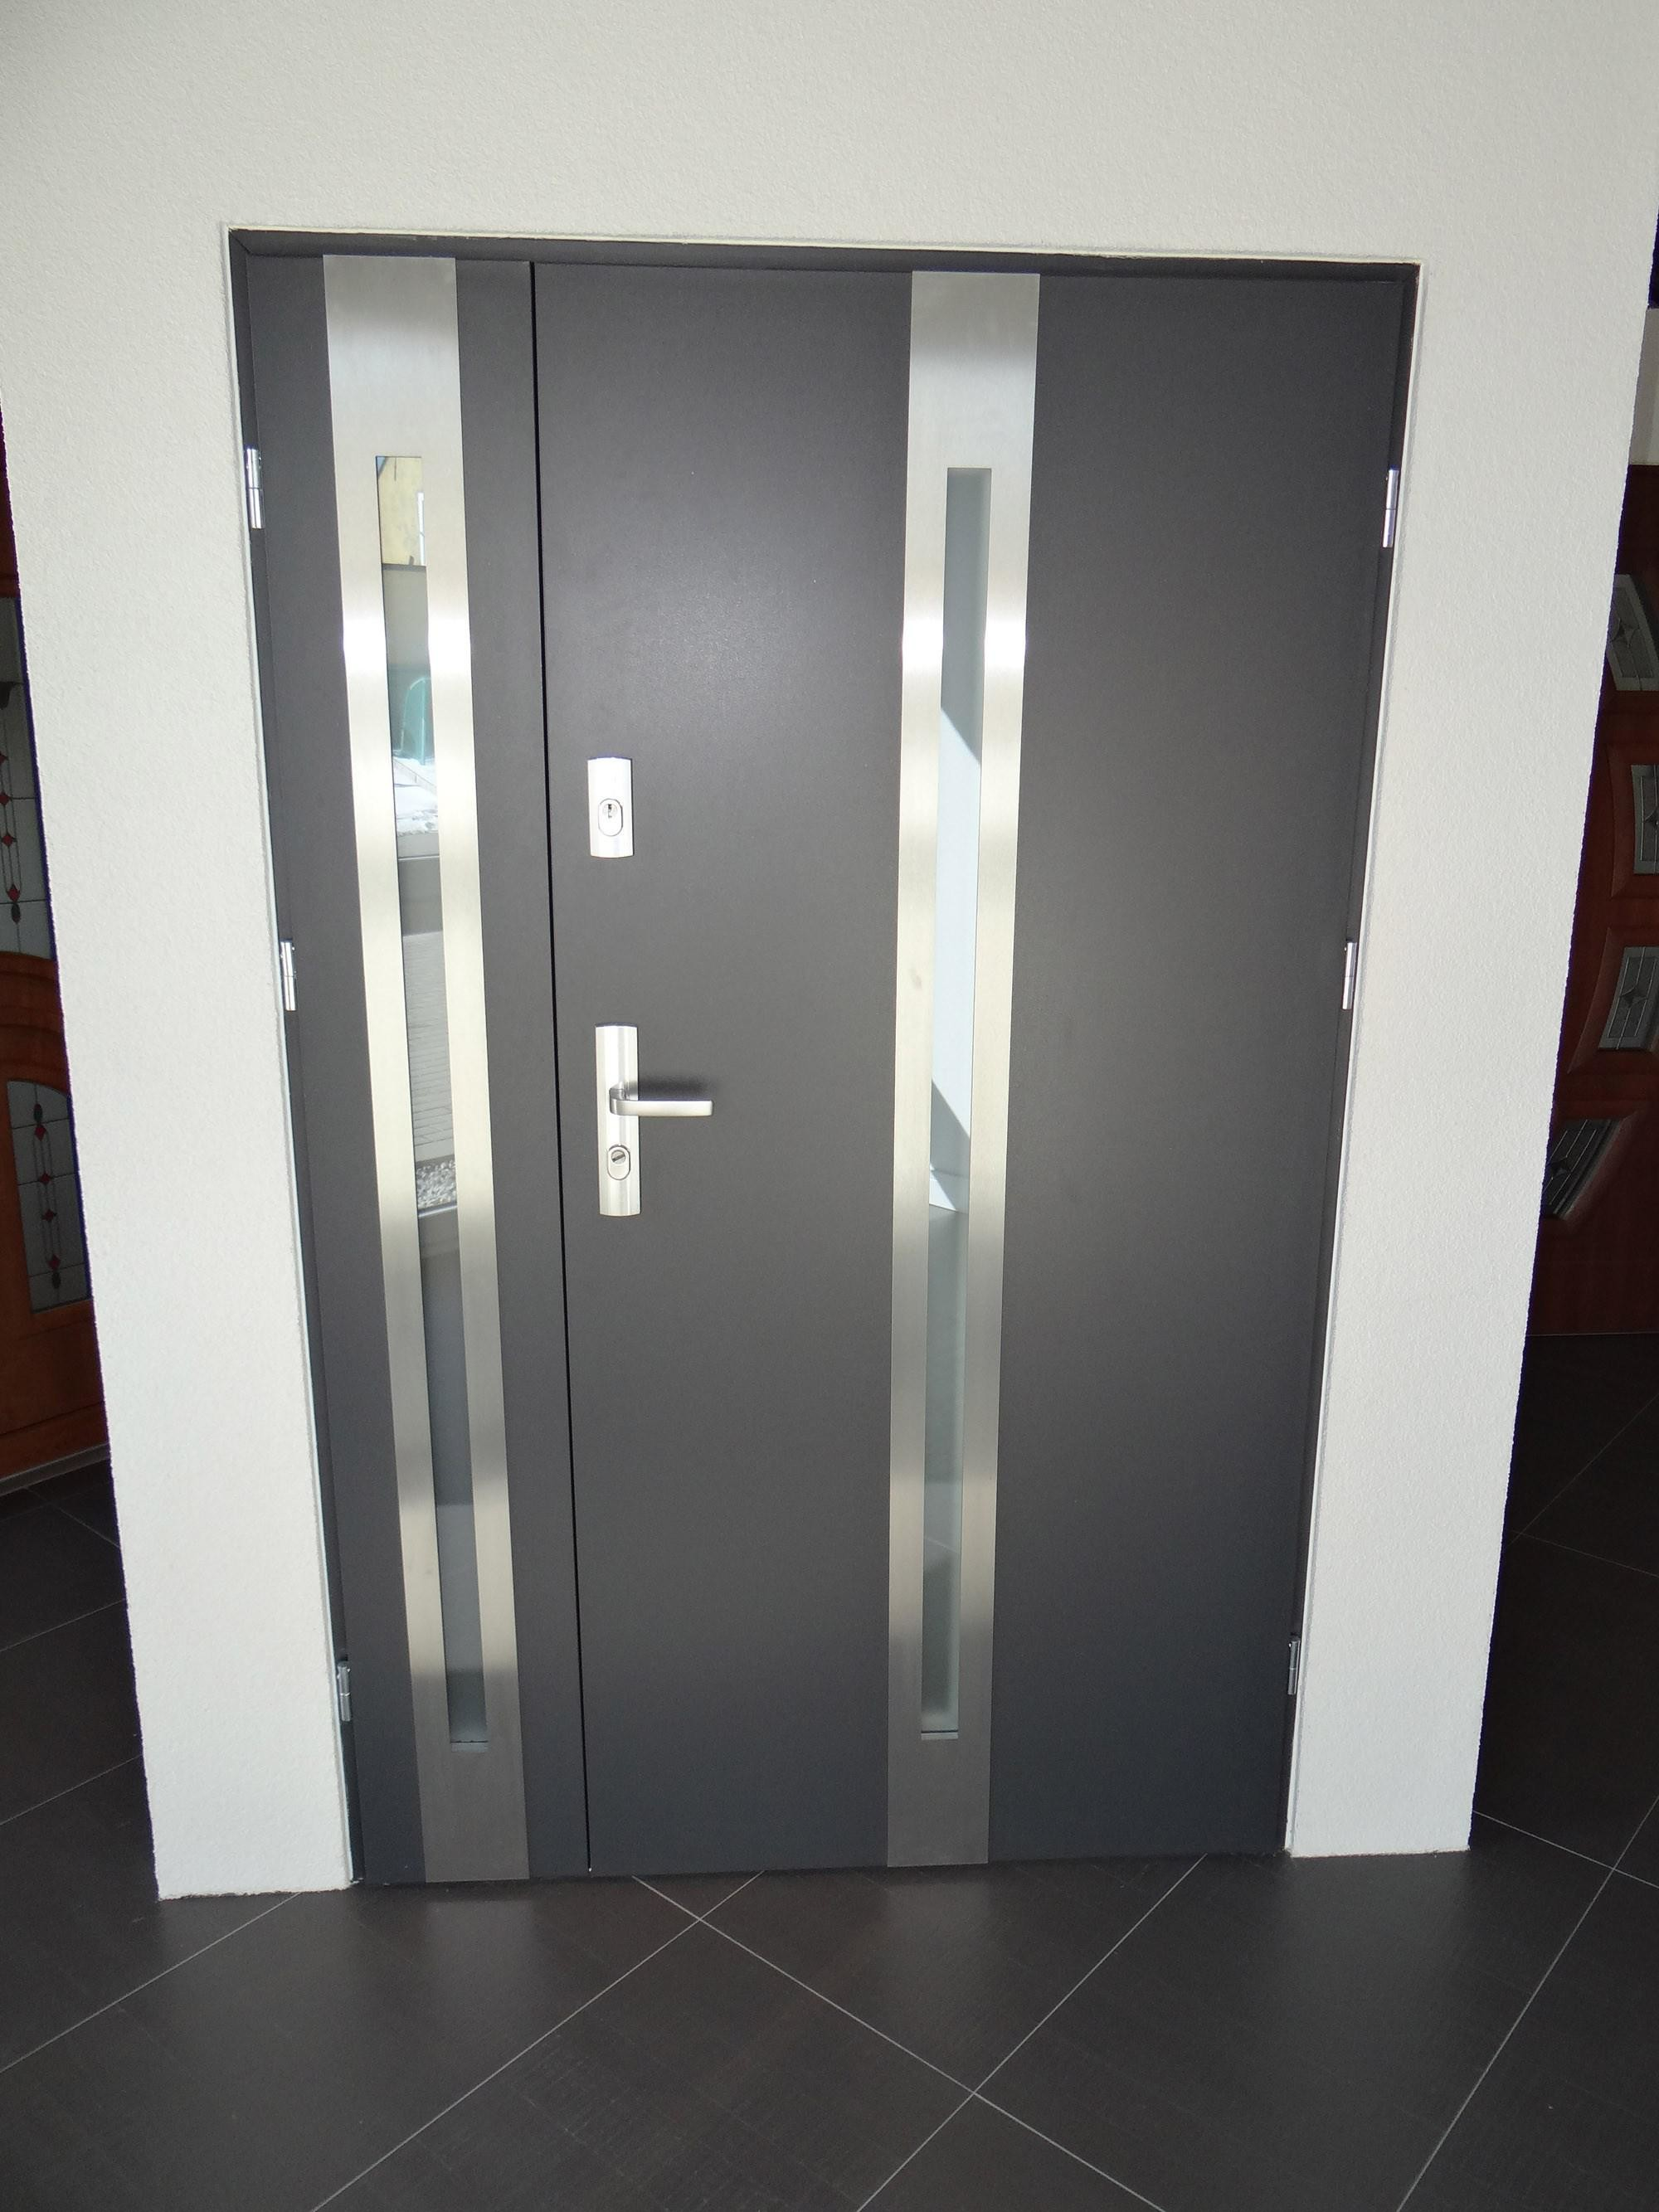 2667 #5A7171 Stainless Steel Front Doors For Homes wallpaper Stainless Steel  Entry Doors Residential 47152000